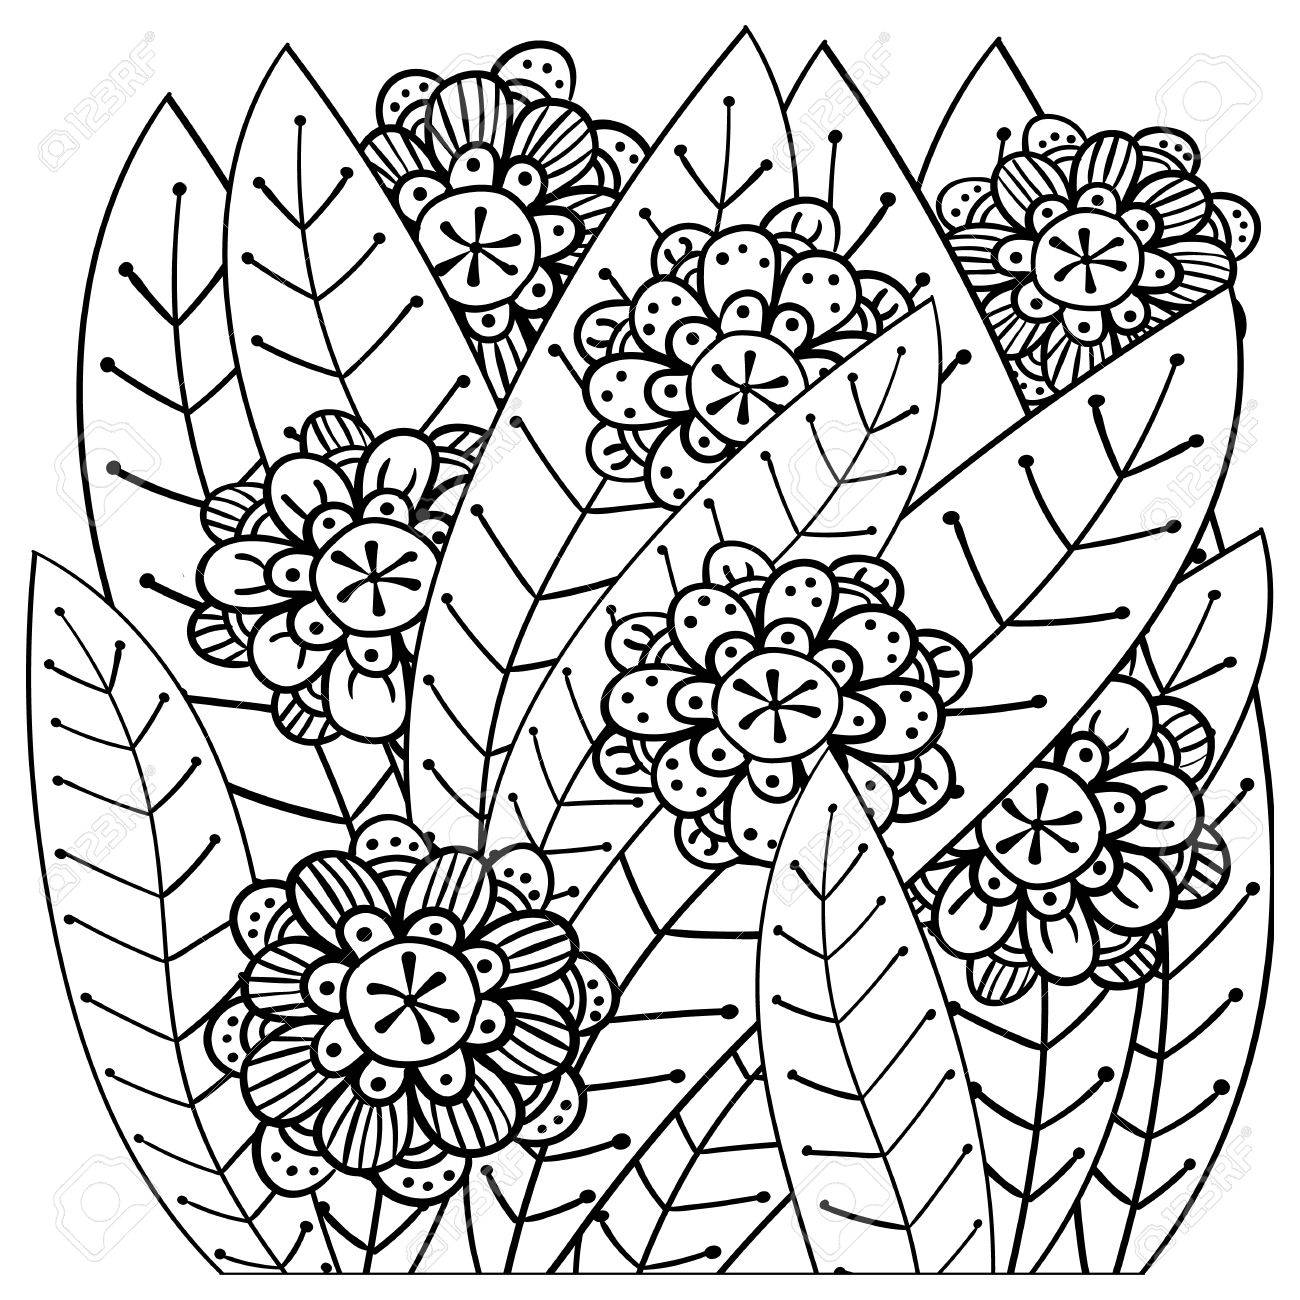 Whimsical Garden Adult Coloring Book Page. Soft Intricate Pattern ...